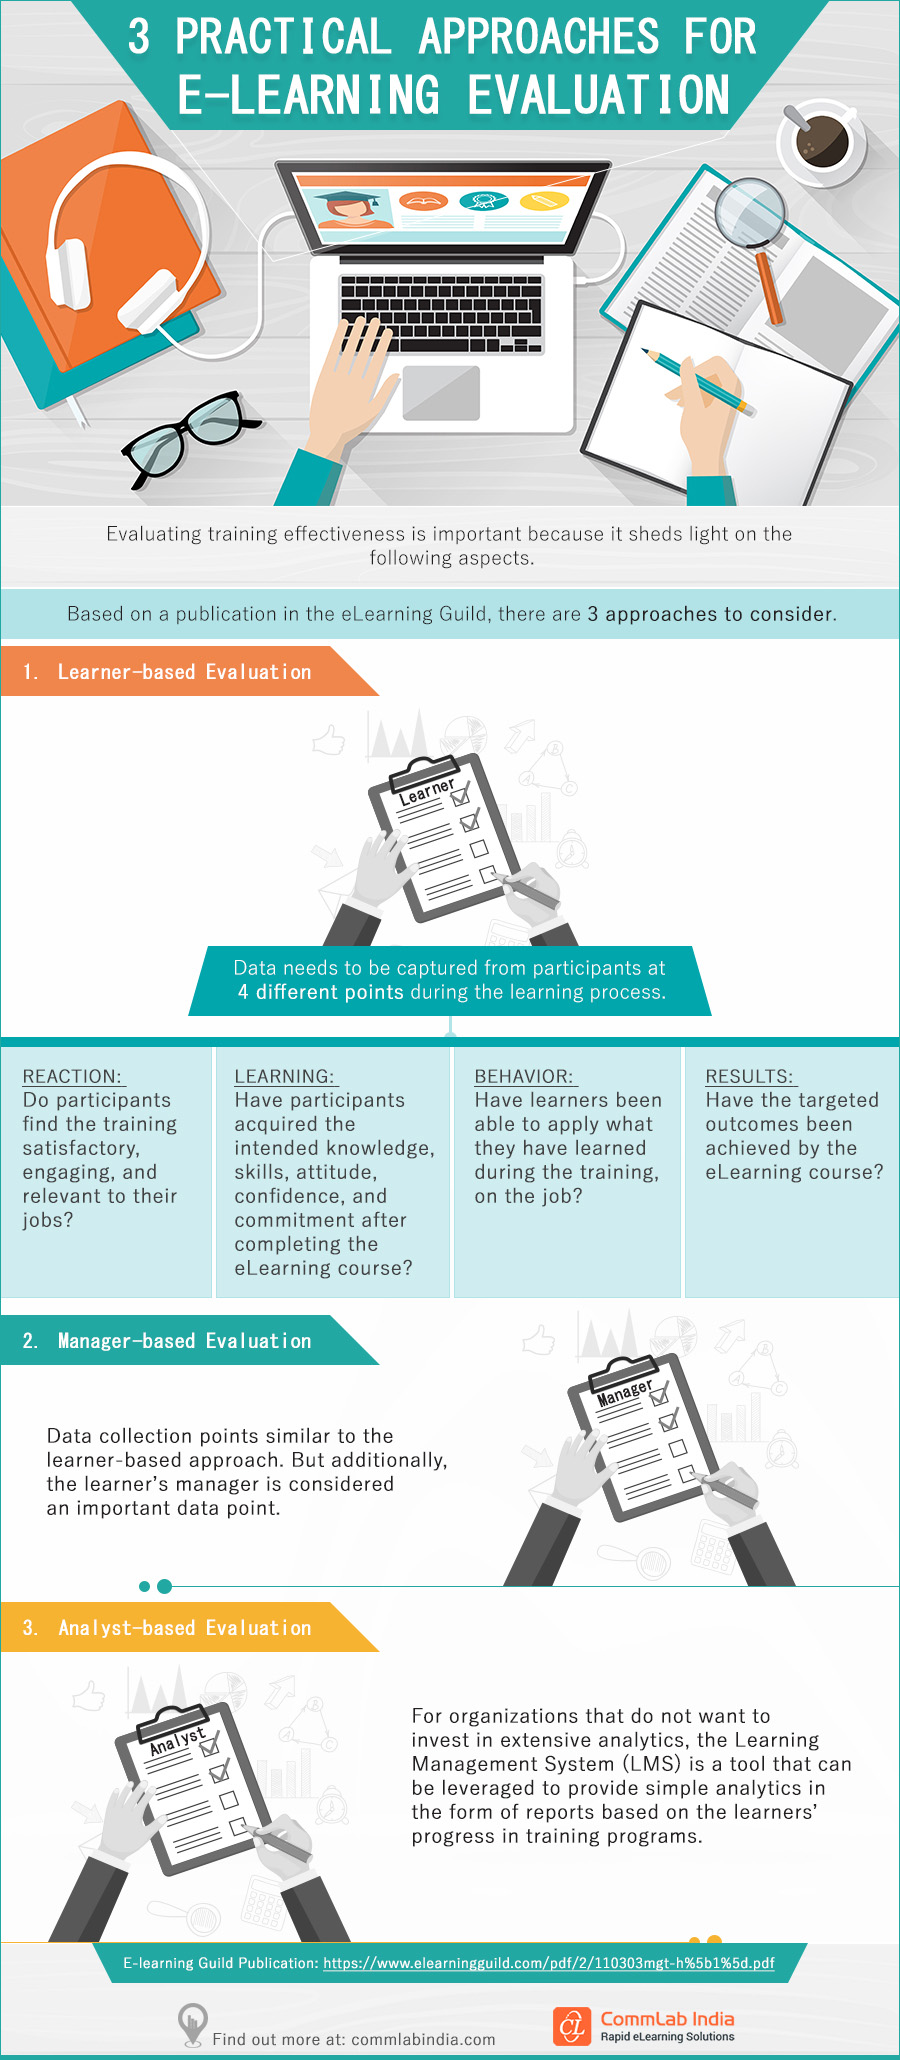 3 Practical Approaches for E-learning Evaluation [Infographic]